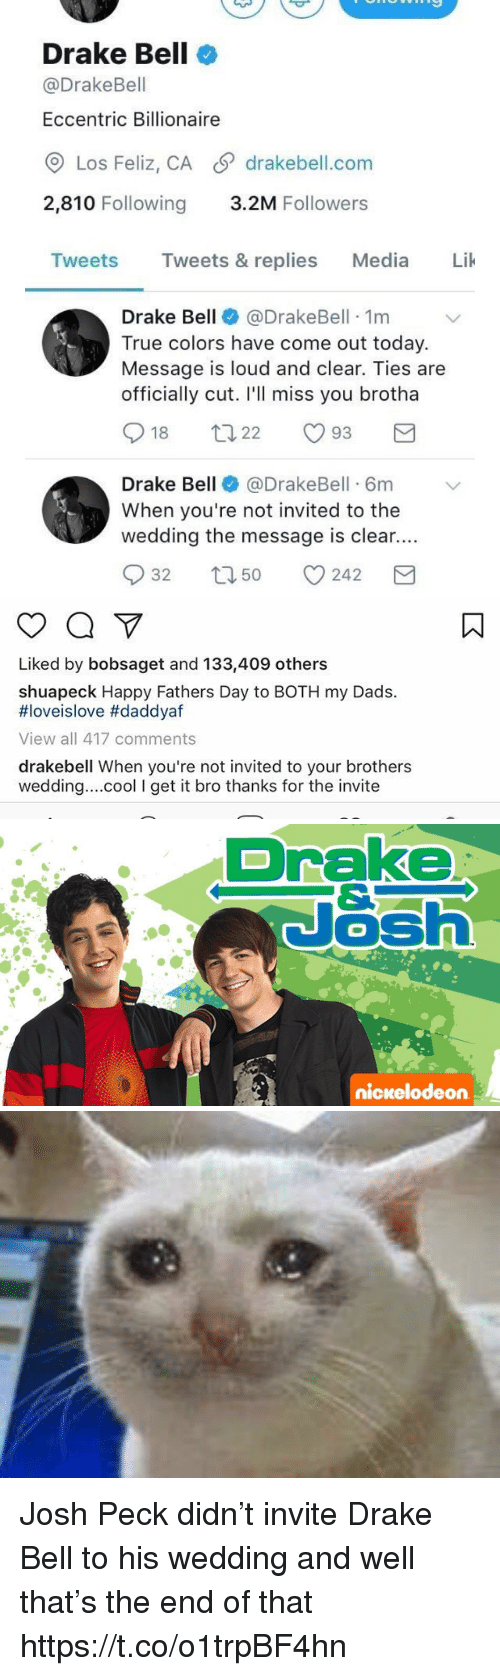 Drake, Drake Bell, and Fathers Day: Drake Bell  @Drake Bell  Eccentric Billionaire  CO Los Feliz, CA SP drakebell.com  2,810 Following  3.2M Followers  Tweets  Tweets & replies  Media  Lik  Drake Bell  @Drake Bell 1m  True colors have come out today.  Message is loud and clear. Ties are  officially cut. I'll miss you brotha  S t 22  18  93  Drake Bell  @DrakeBell 6m v  When you're not invited to the  wedding the message is clear....  S 32 t 50 242  M   Liked by bobsaget and 133,409 others  shuapeck Happy Fathers Day to BOTH my Dads.  HIoveislove #daddyaf  View all 417 comments  drakebell When you're not invited to your brothers  wedding....cool I get it bro thanks for the invite   Drake  Nash  nickelodeon Josh Peck didn't invite Drake Bell to his wedding and well that's the end of that https://t.co/o1trpBF4hn